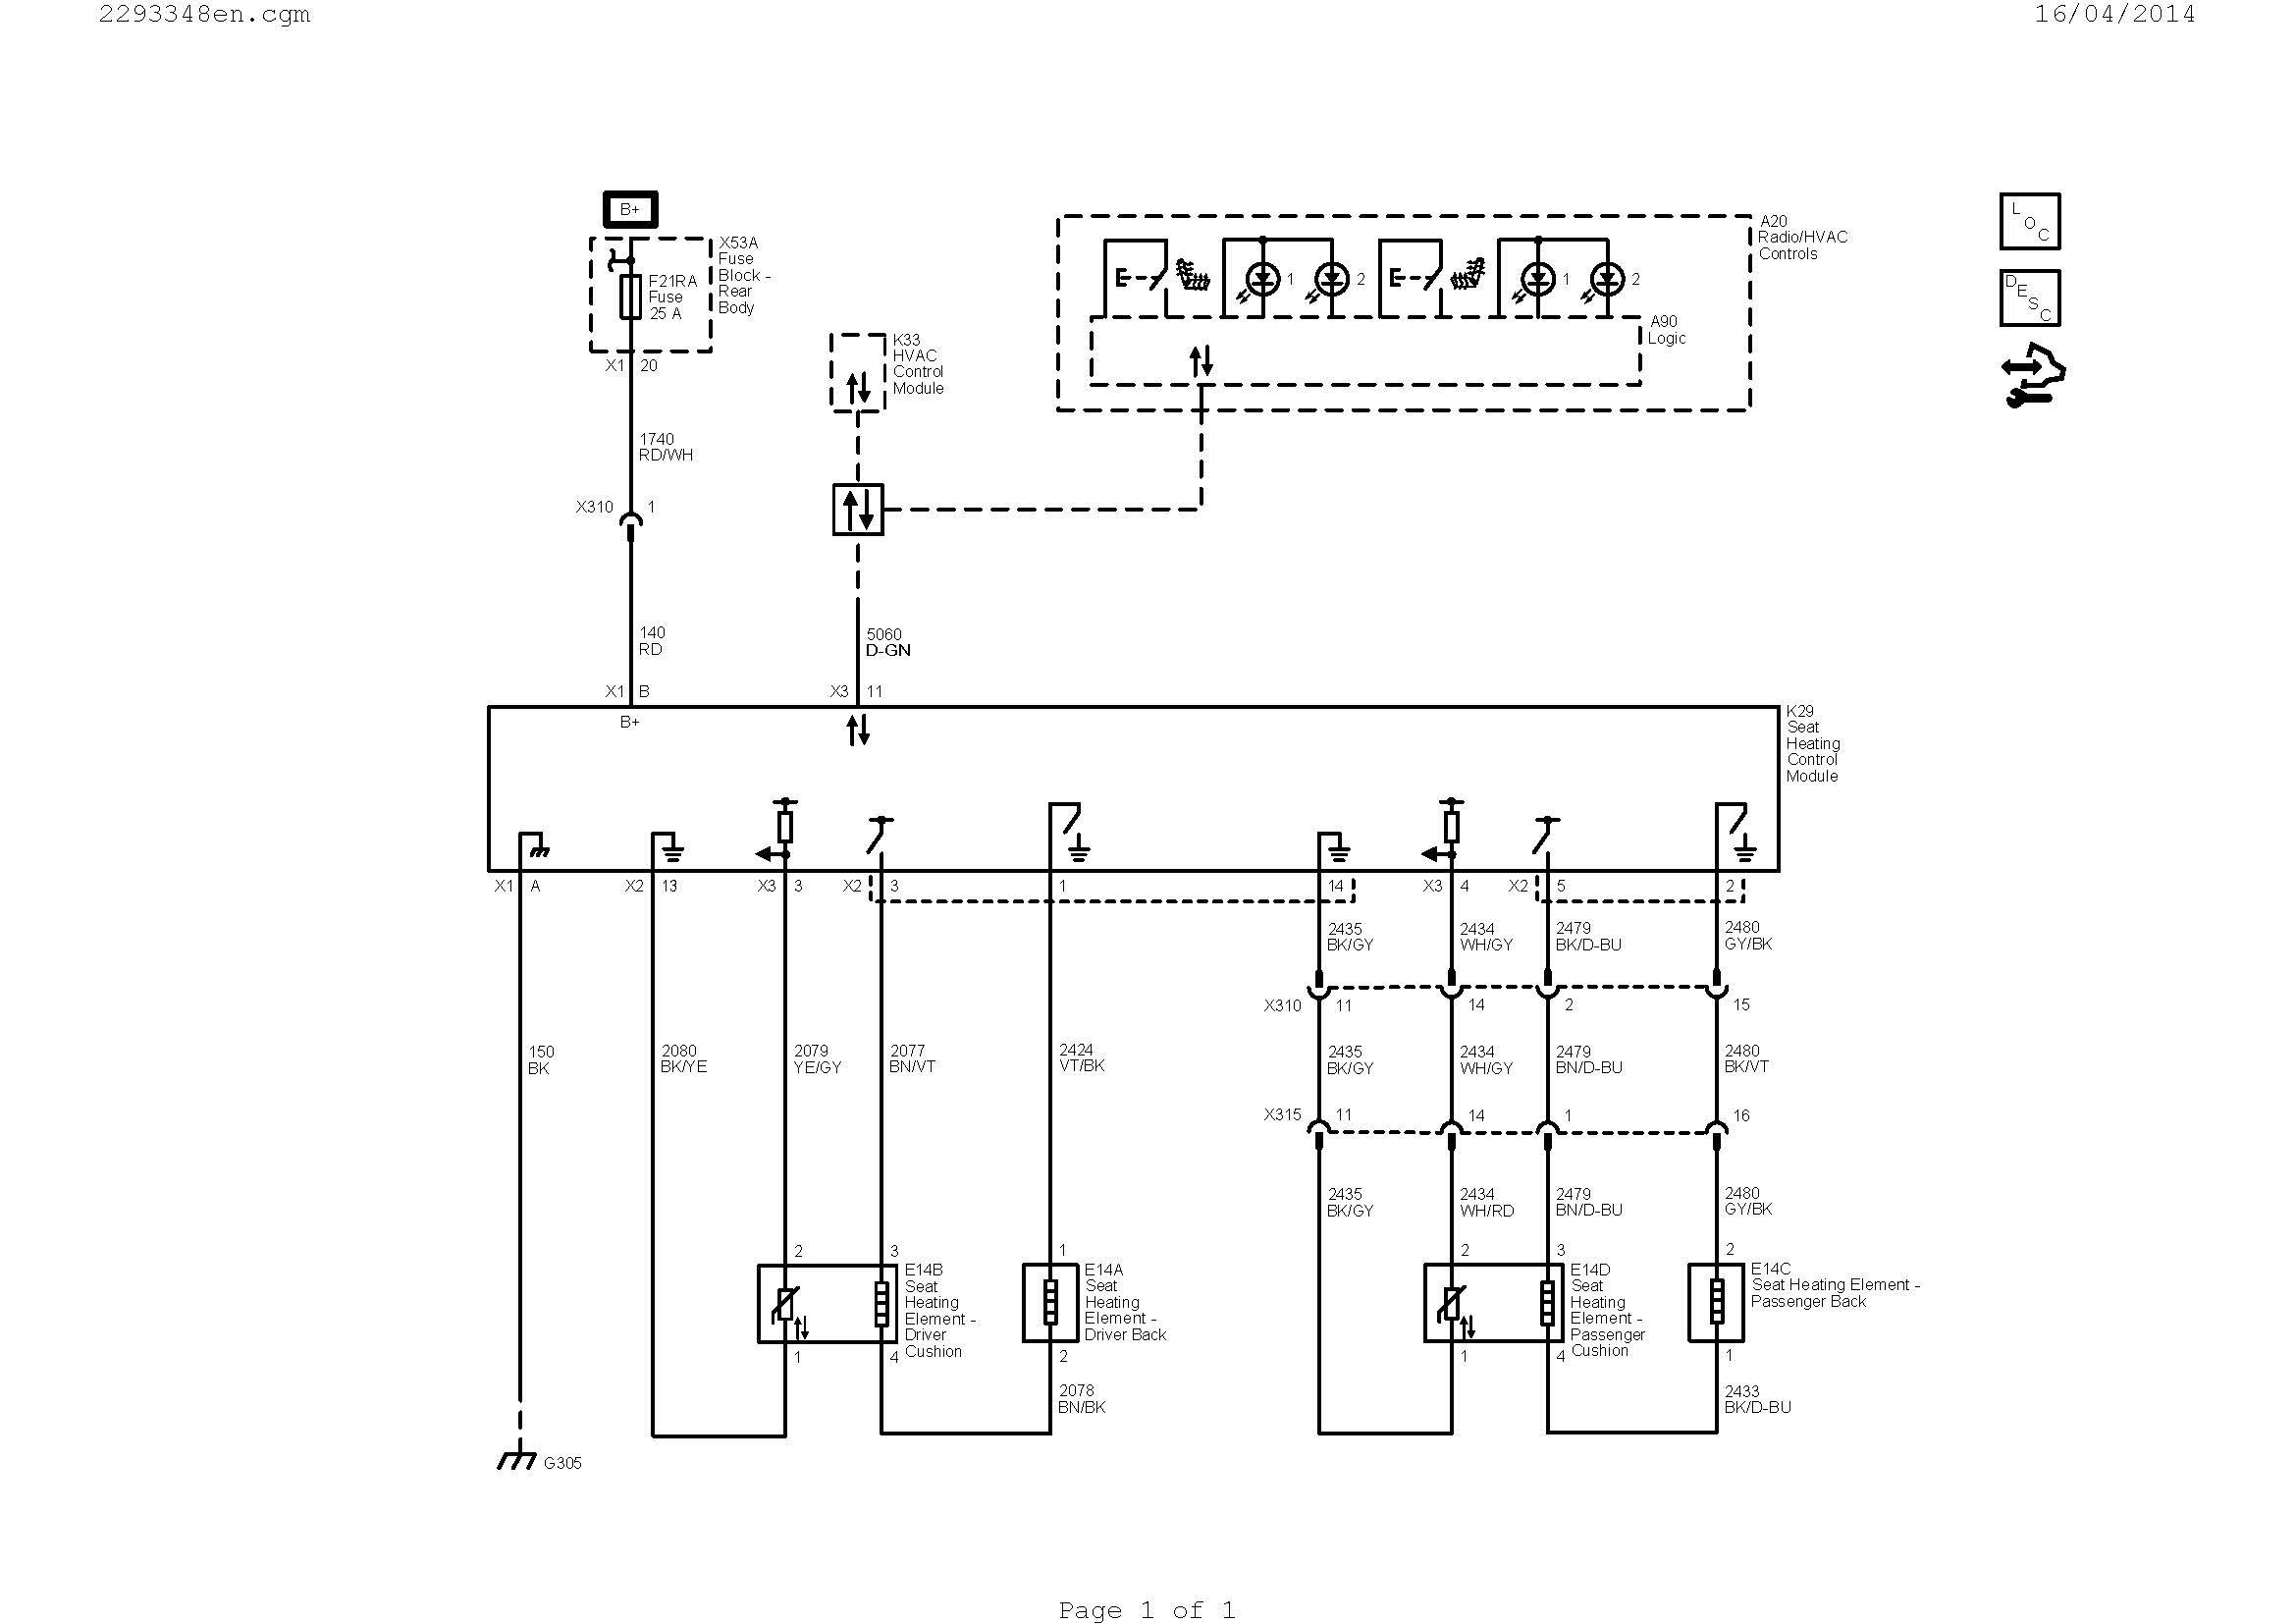 bathroom light wiring diagram Collection-air conditioner thermostat wiring diagram Download Wiring A Ac Thermostat Diagram New Wiring Diagram Ac 3-q